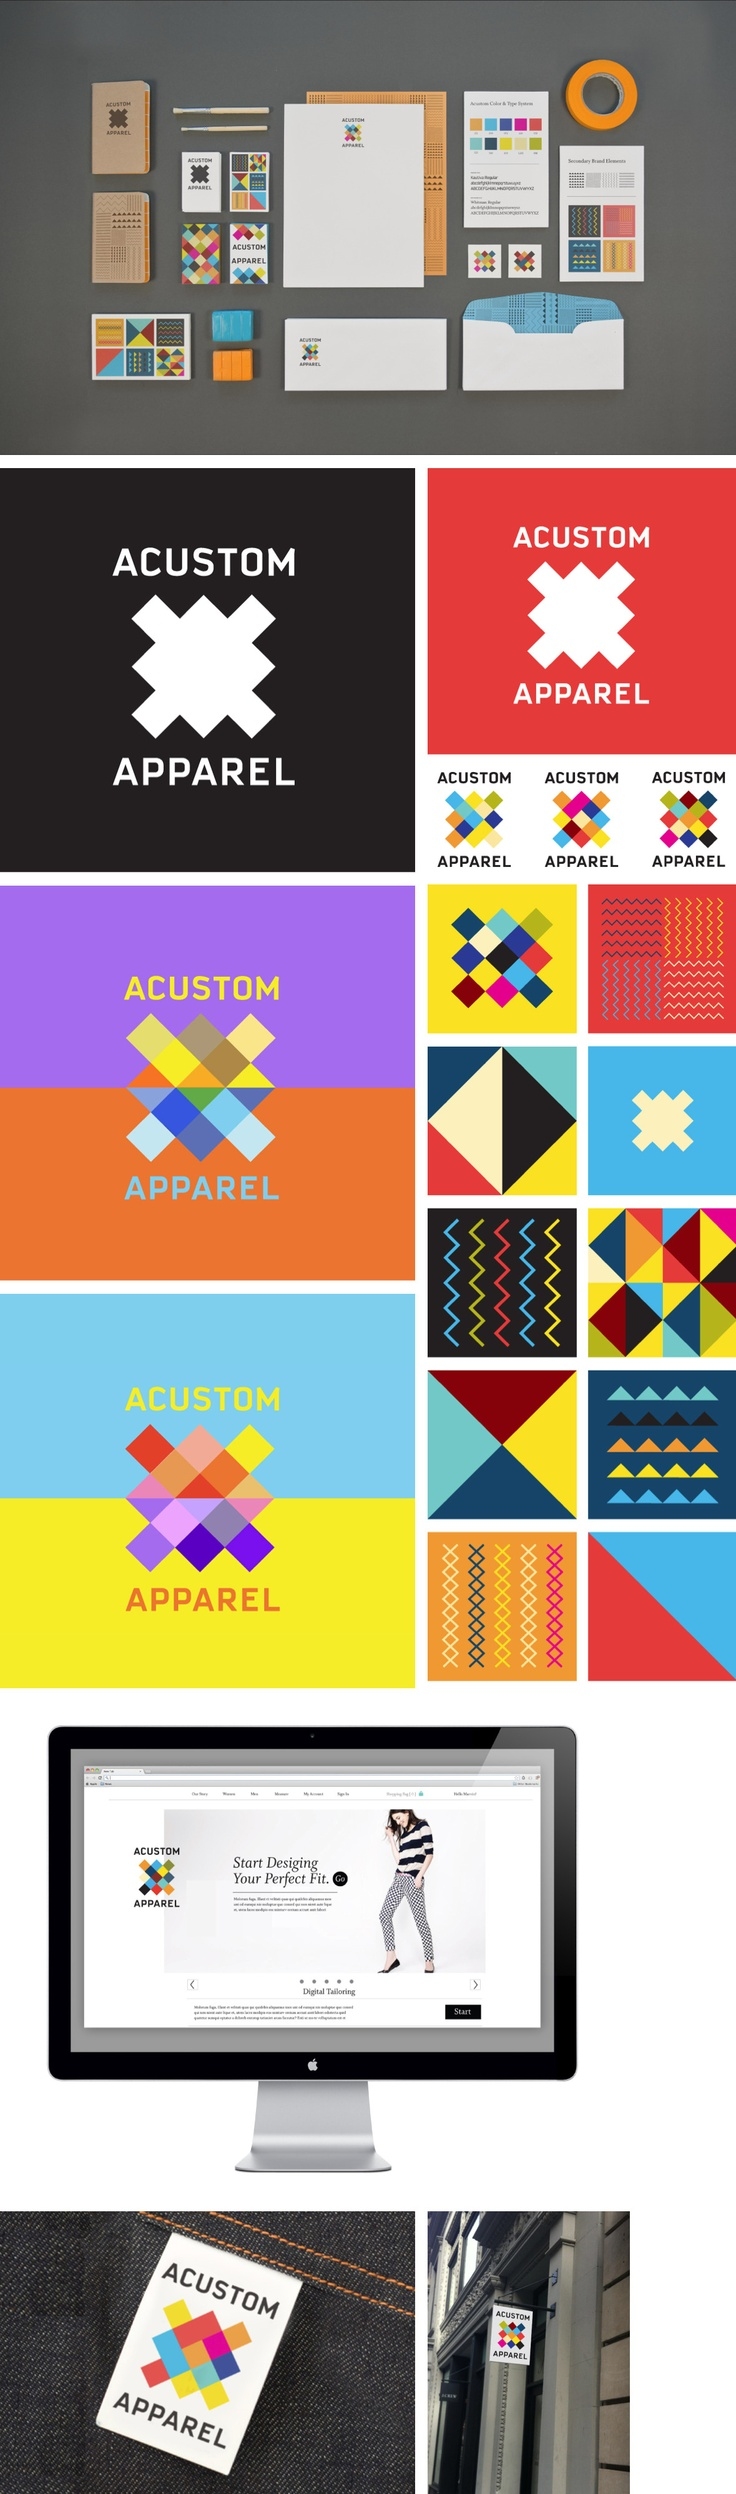 Acustom Apparel Identity by Matt Luckhurst